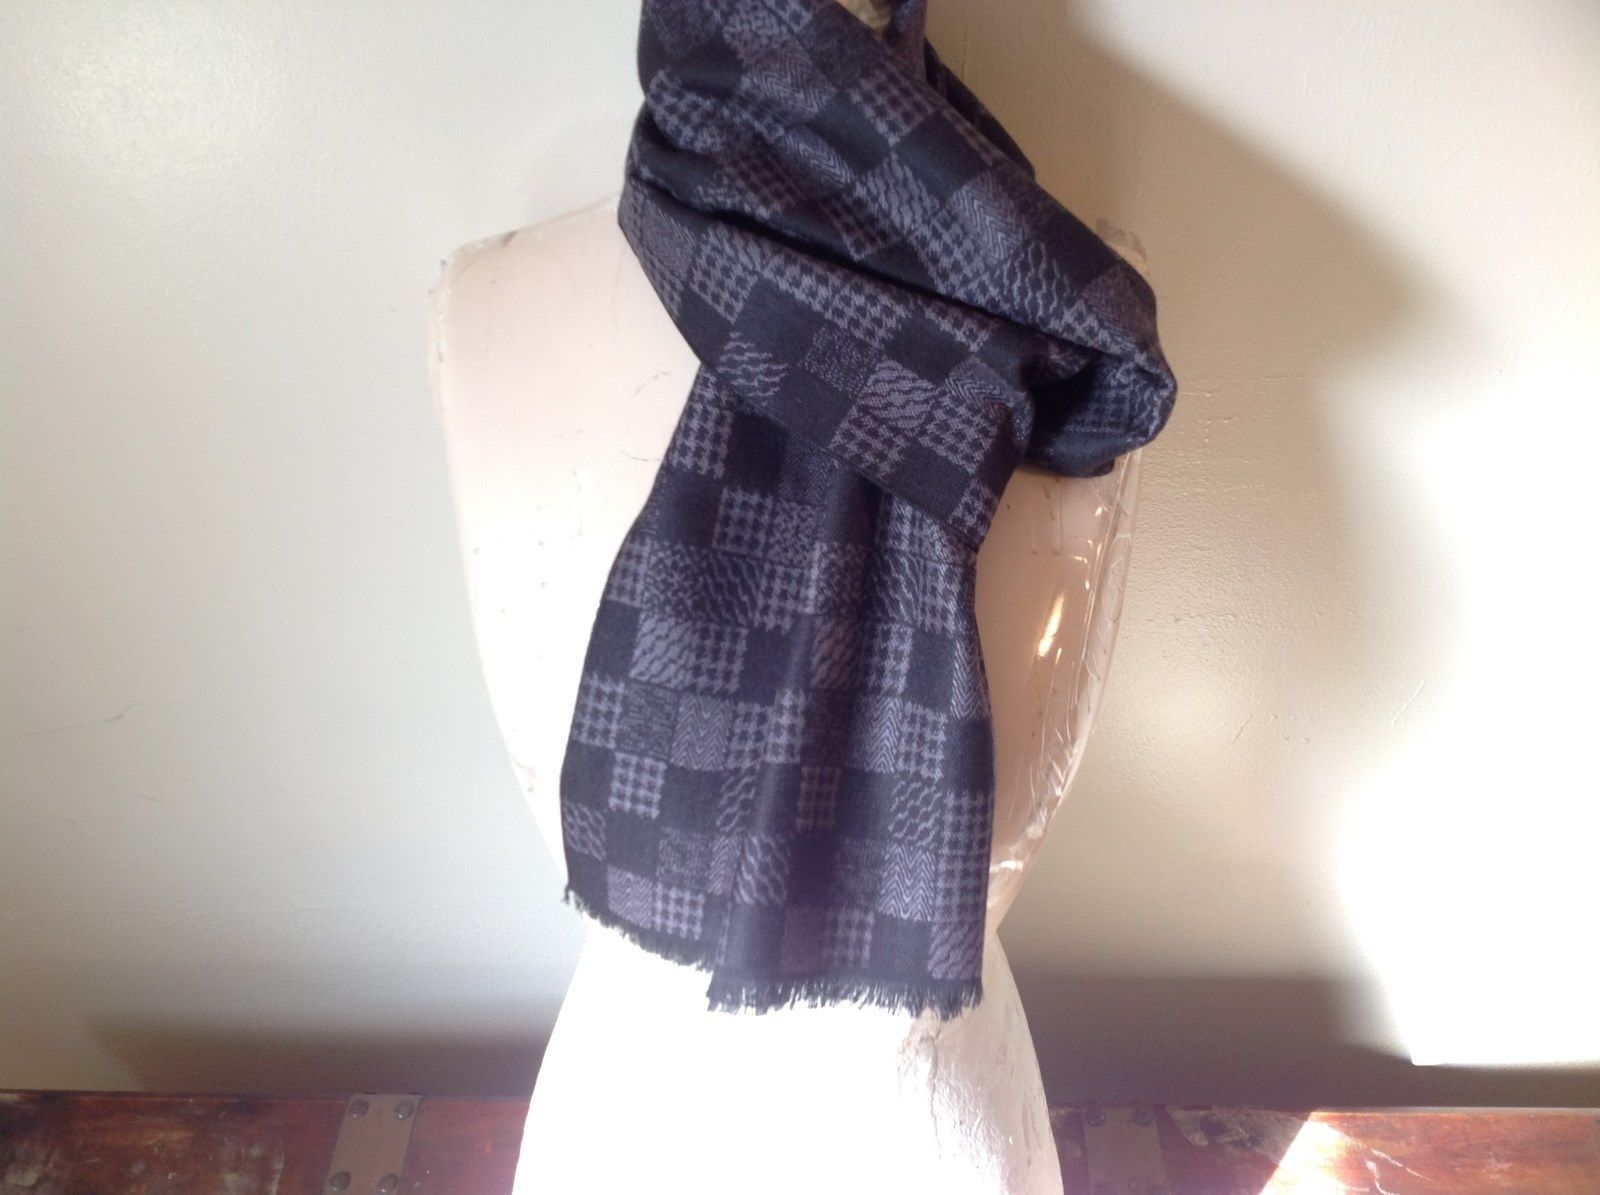 Men's Black Gray Checkered European Scarf by Mad soft 100 Percent Viscose